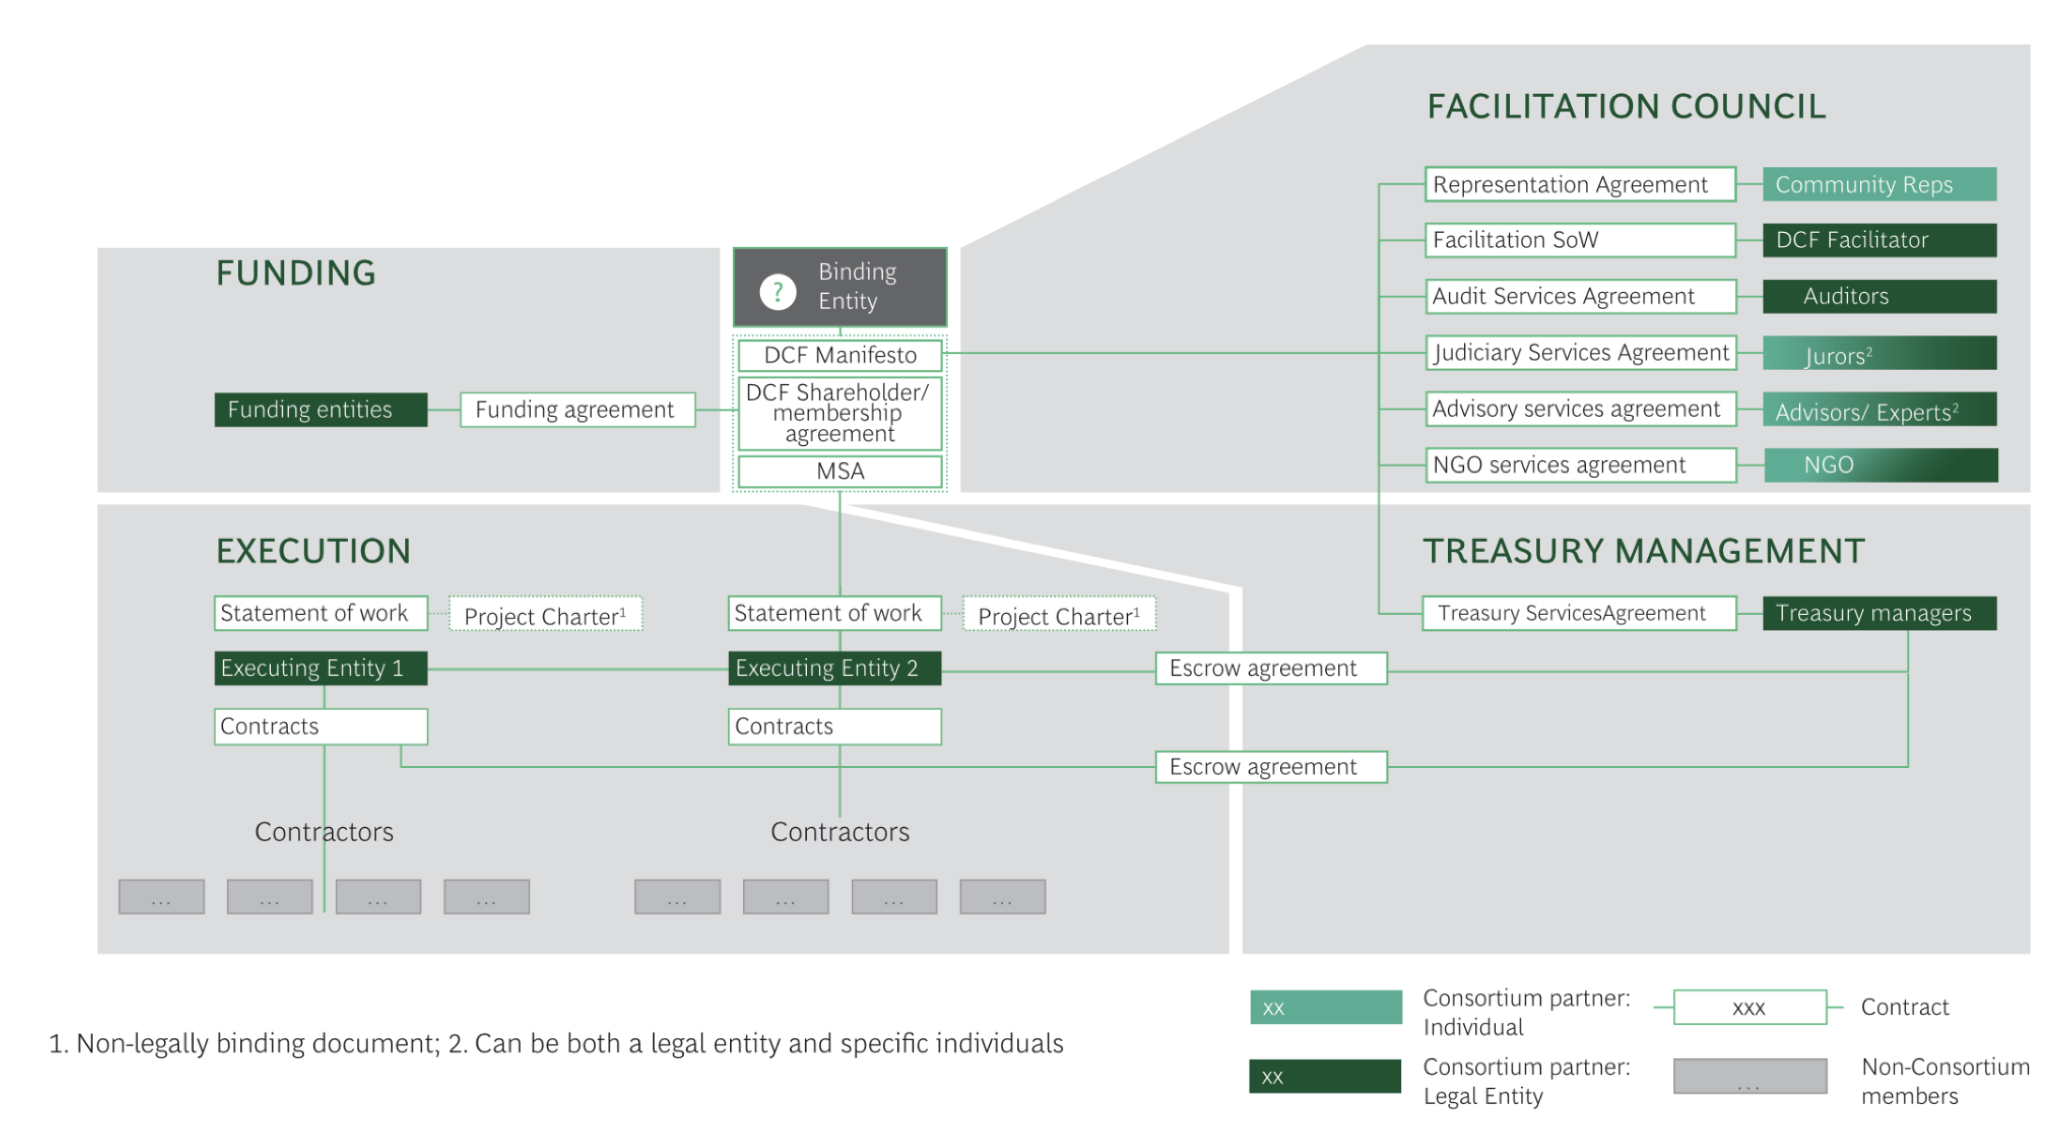 Figure 2. Governance and execution components of the DCF model